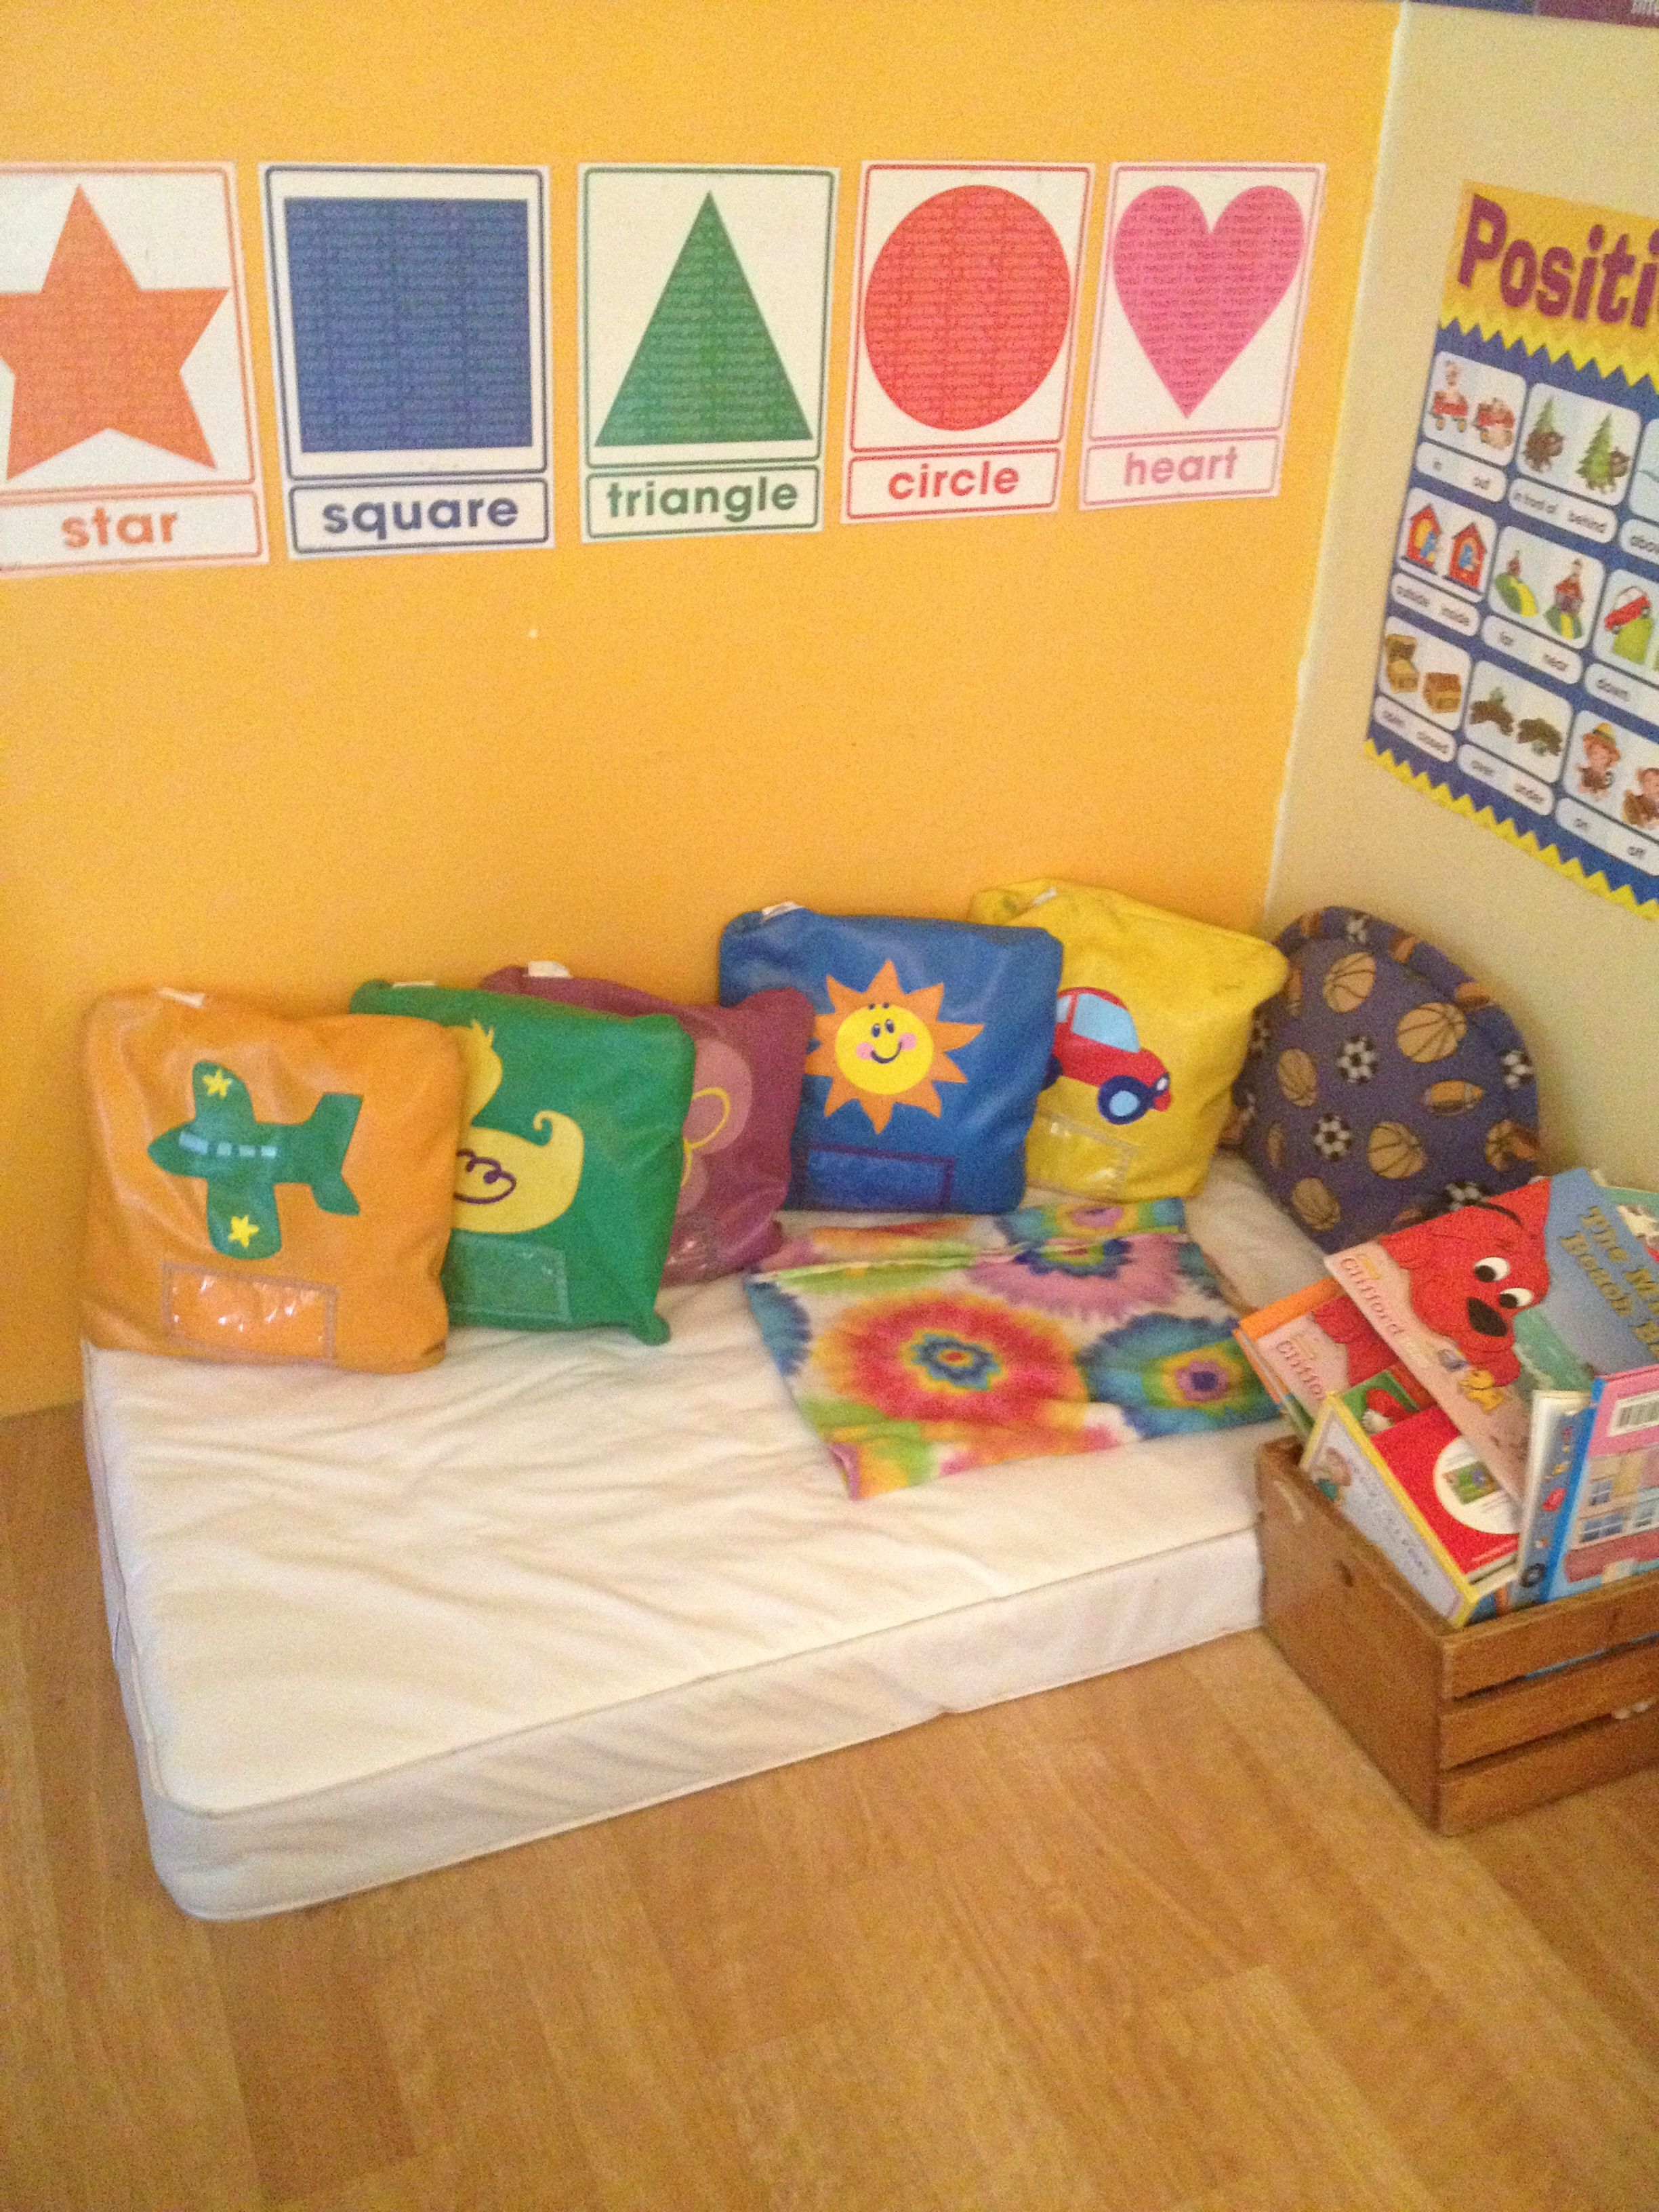 Baby cribs for daycare centers - Home Daycare Reading Area Used A Baby Mattress That I Was No Longer Needing